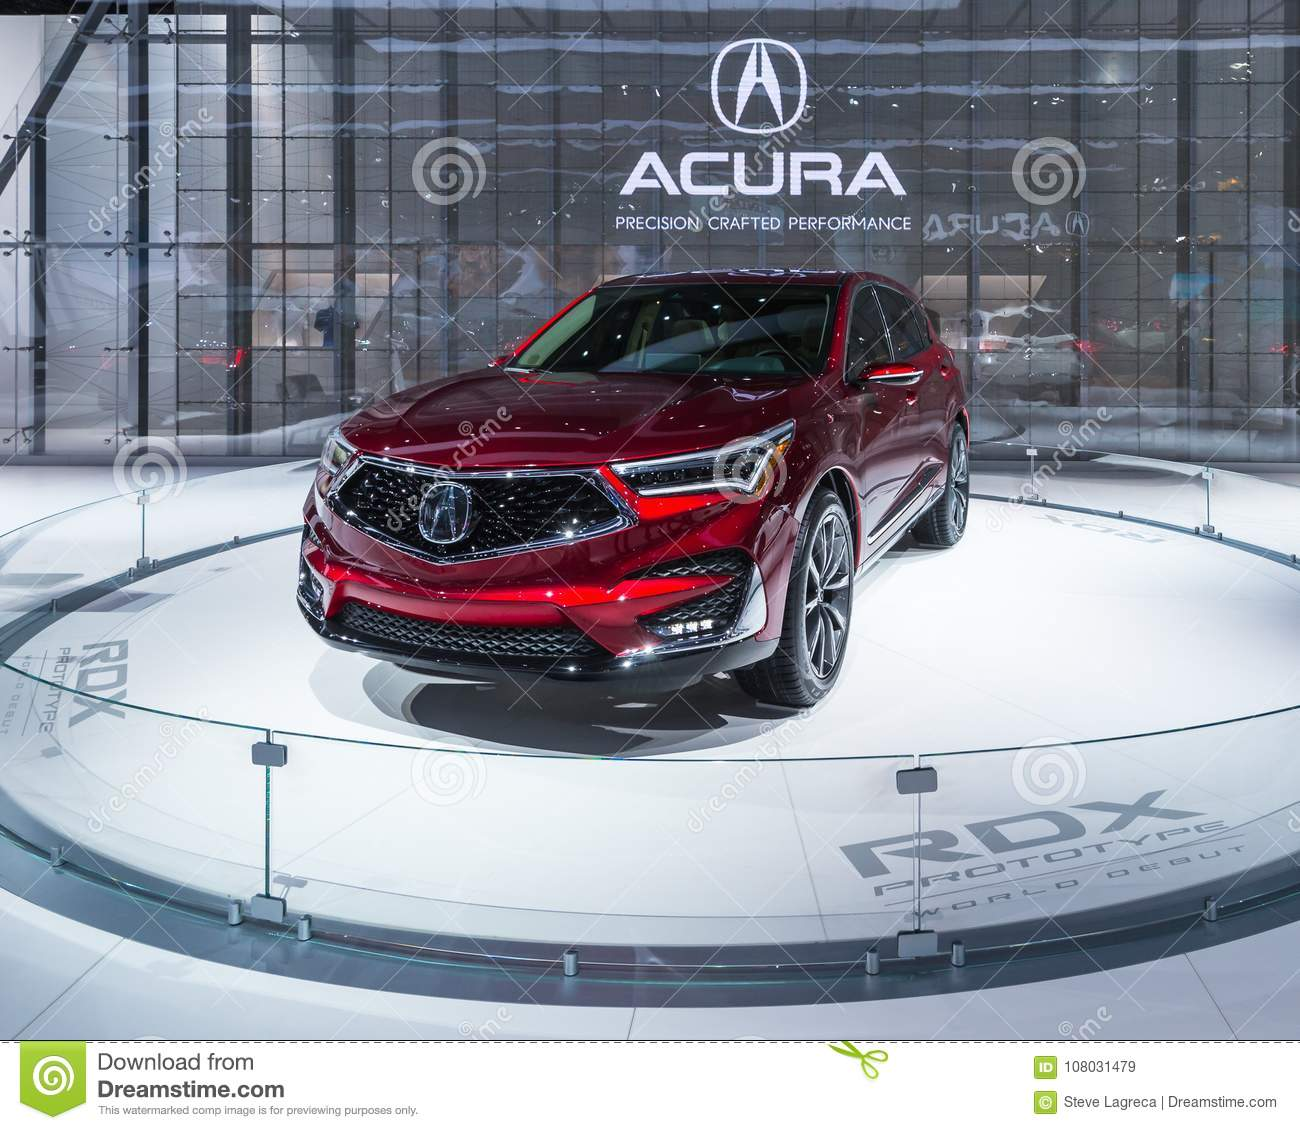 2019 Acura RDX, NAIAS Editorial Stock Image. Image Of Auto